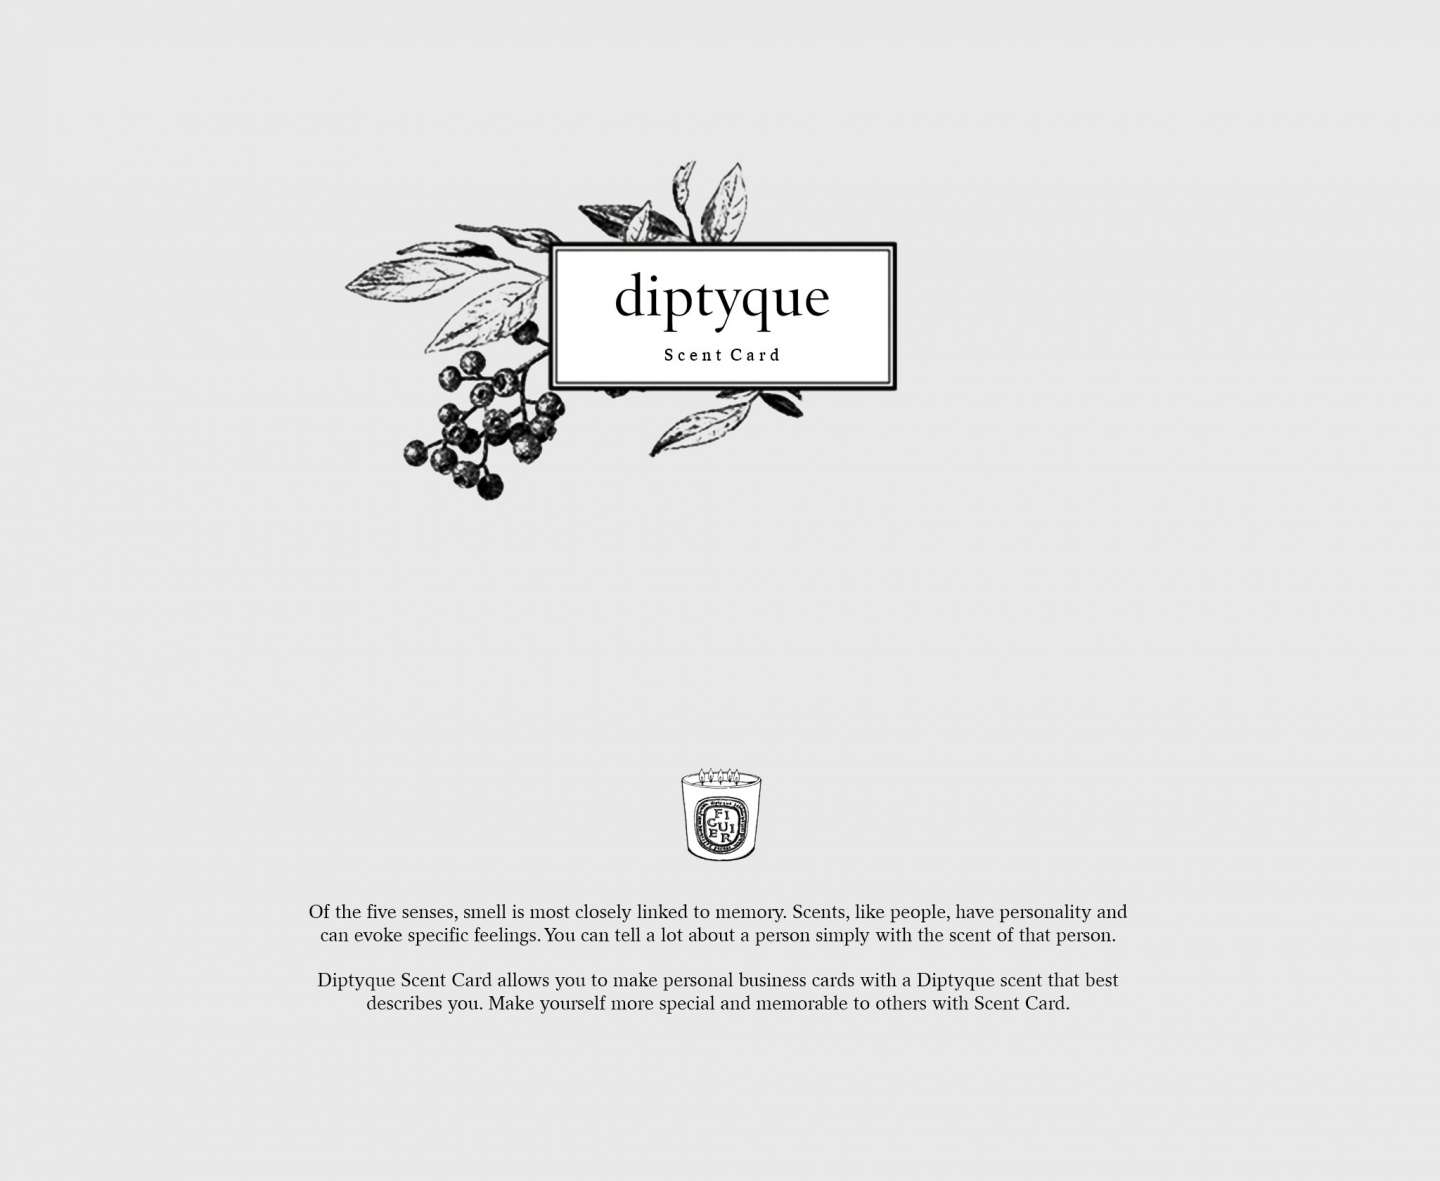 Diptyque scent card by yu ji yang dayoung hwang sva design diptyque scent card allows you to make personal business cards with a diptyque scent that best describes you magicingreecefo Image collections